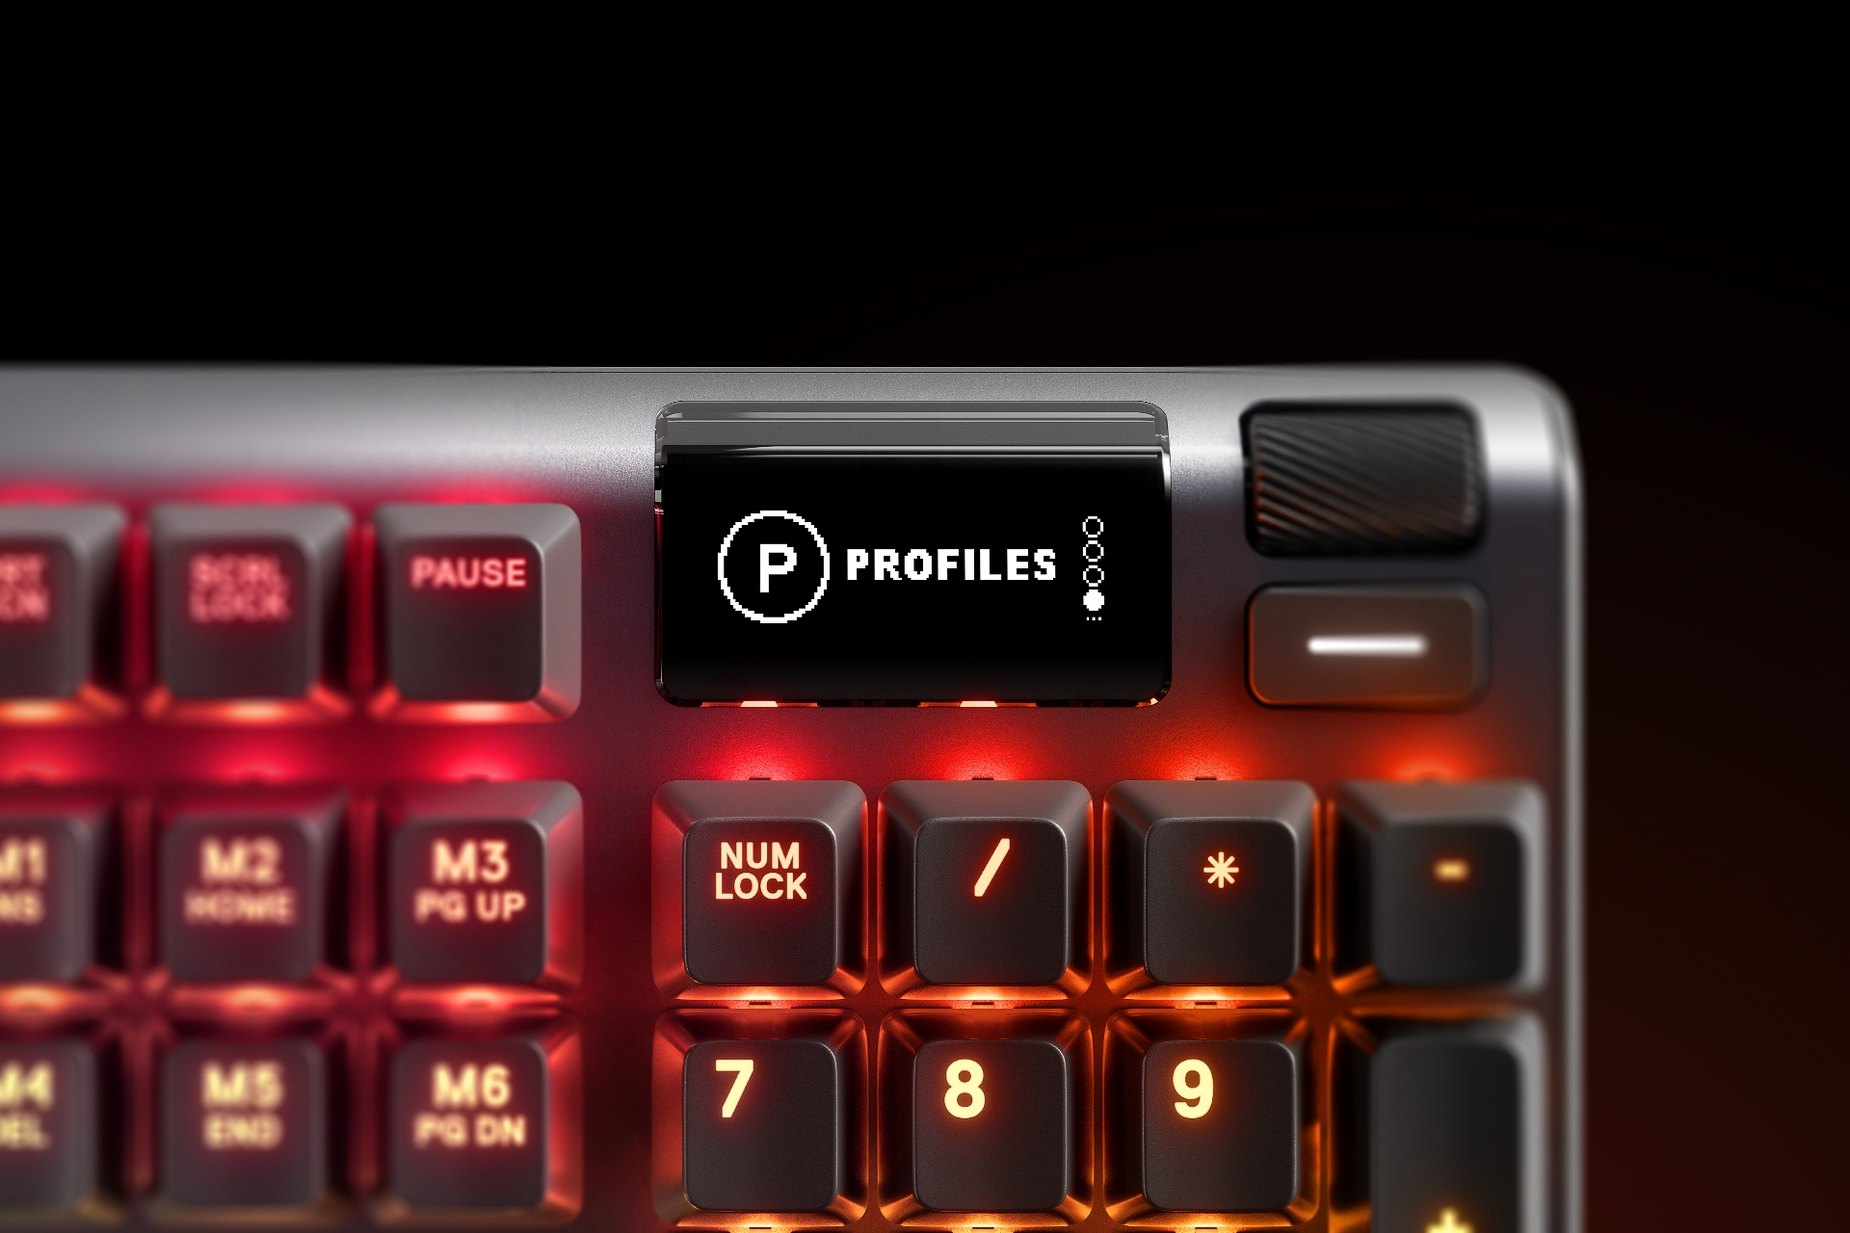 Zoomed in view of the multimedia and settings controls/volume roller on the Nordic-Apex 7 (Red Switch) gaming keyboard